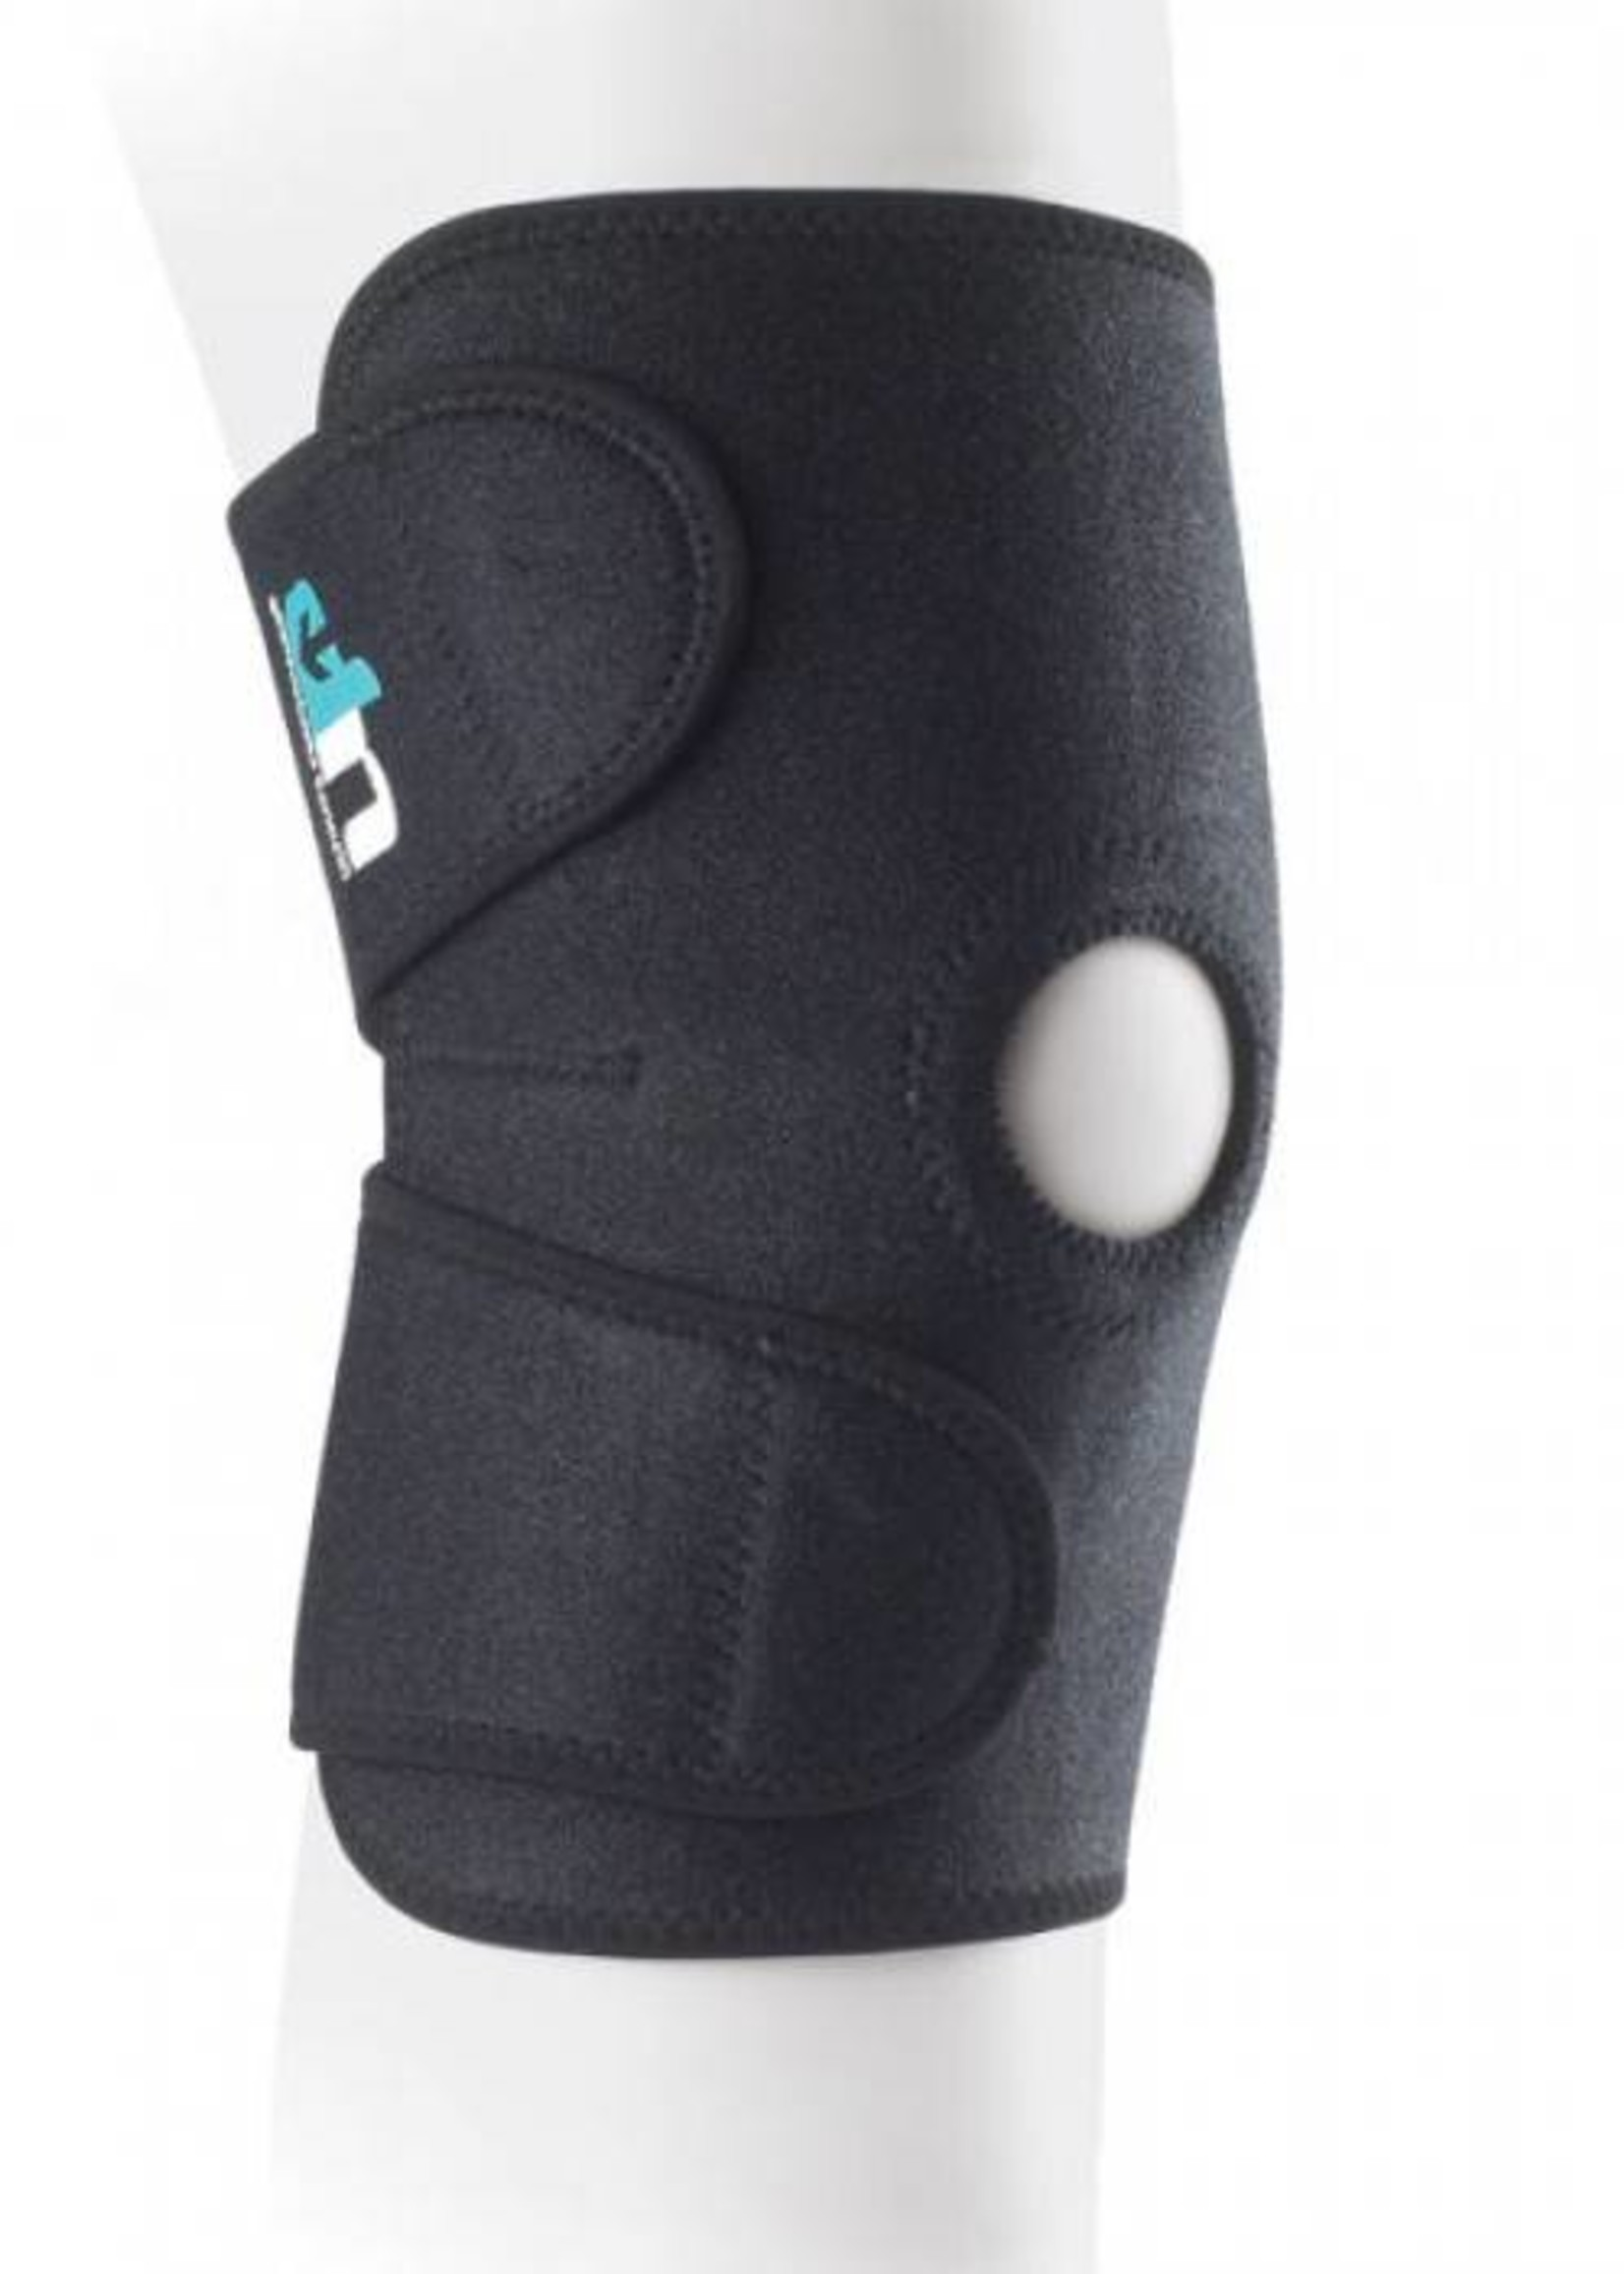 UP Ultimate Knee Support Level 2